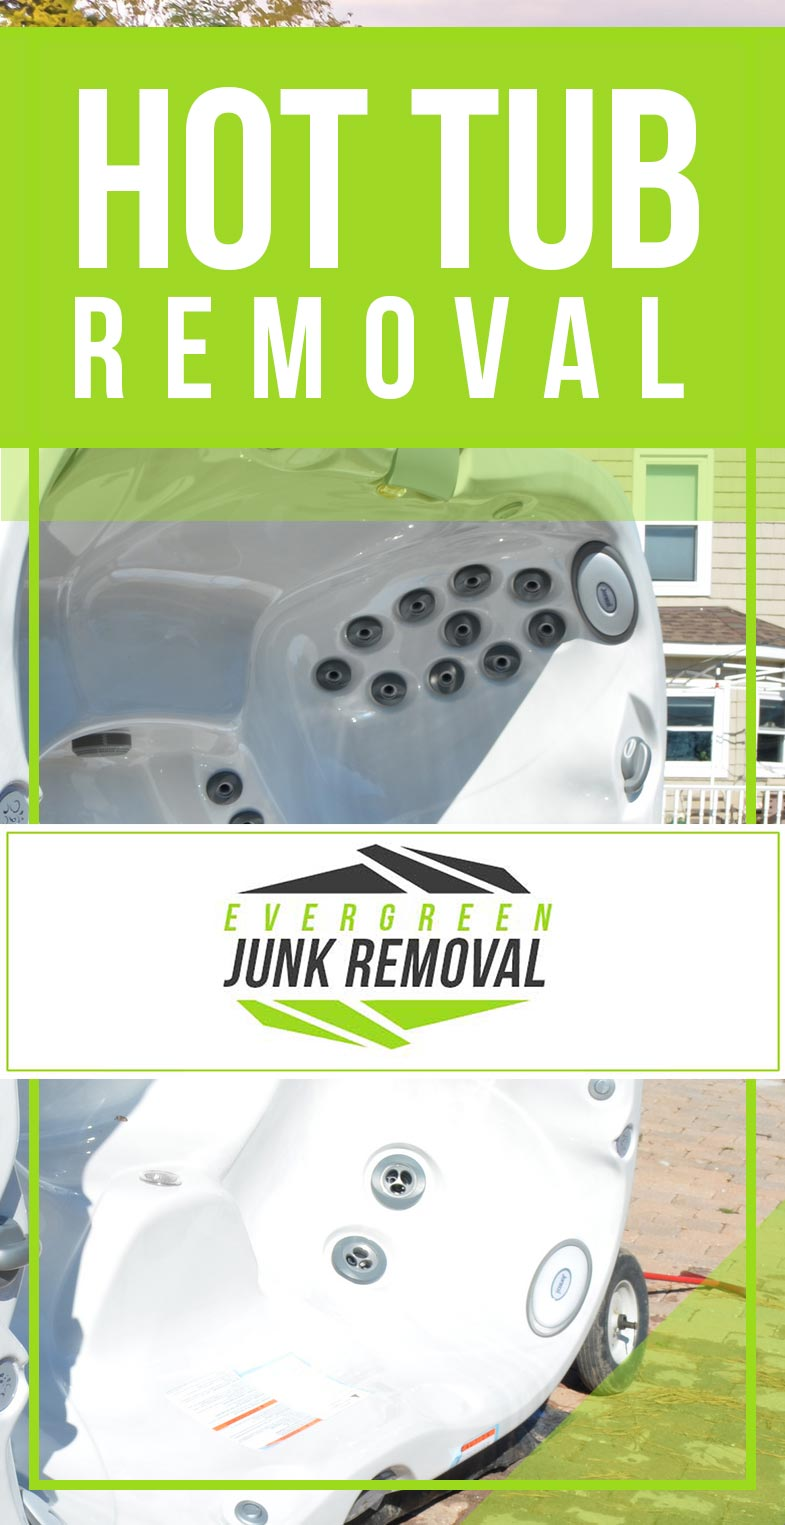 Newark Hot Tub Removal